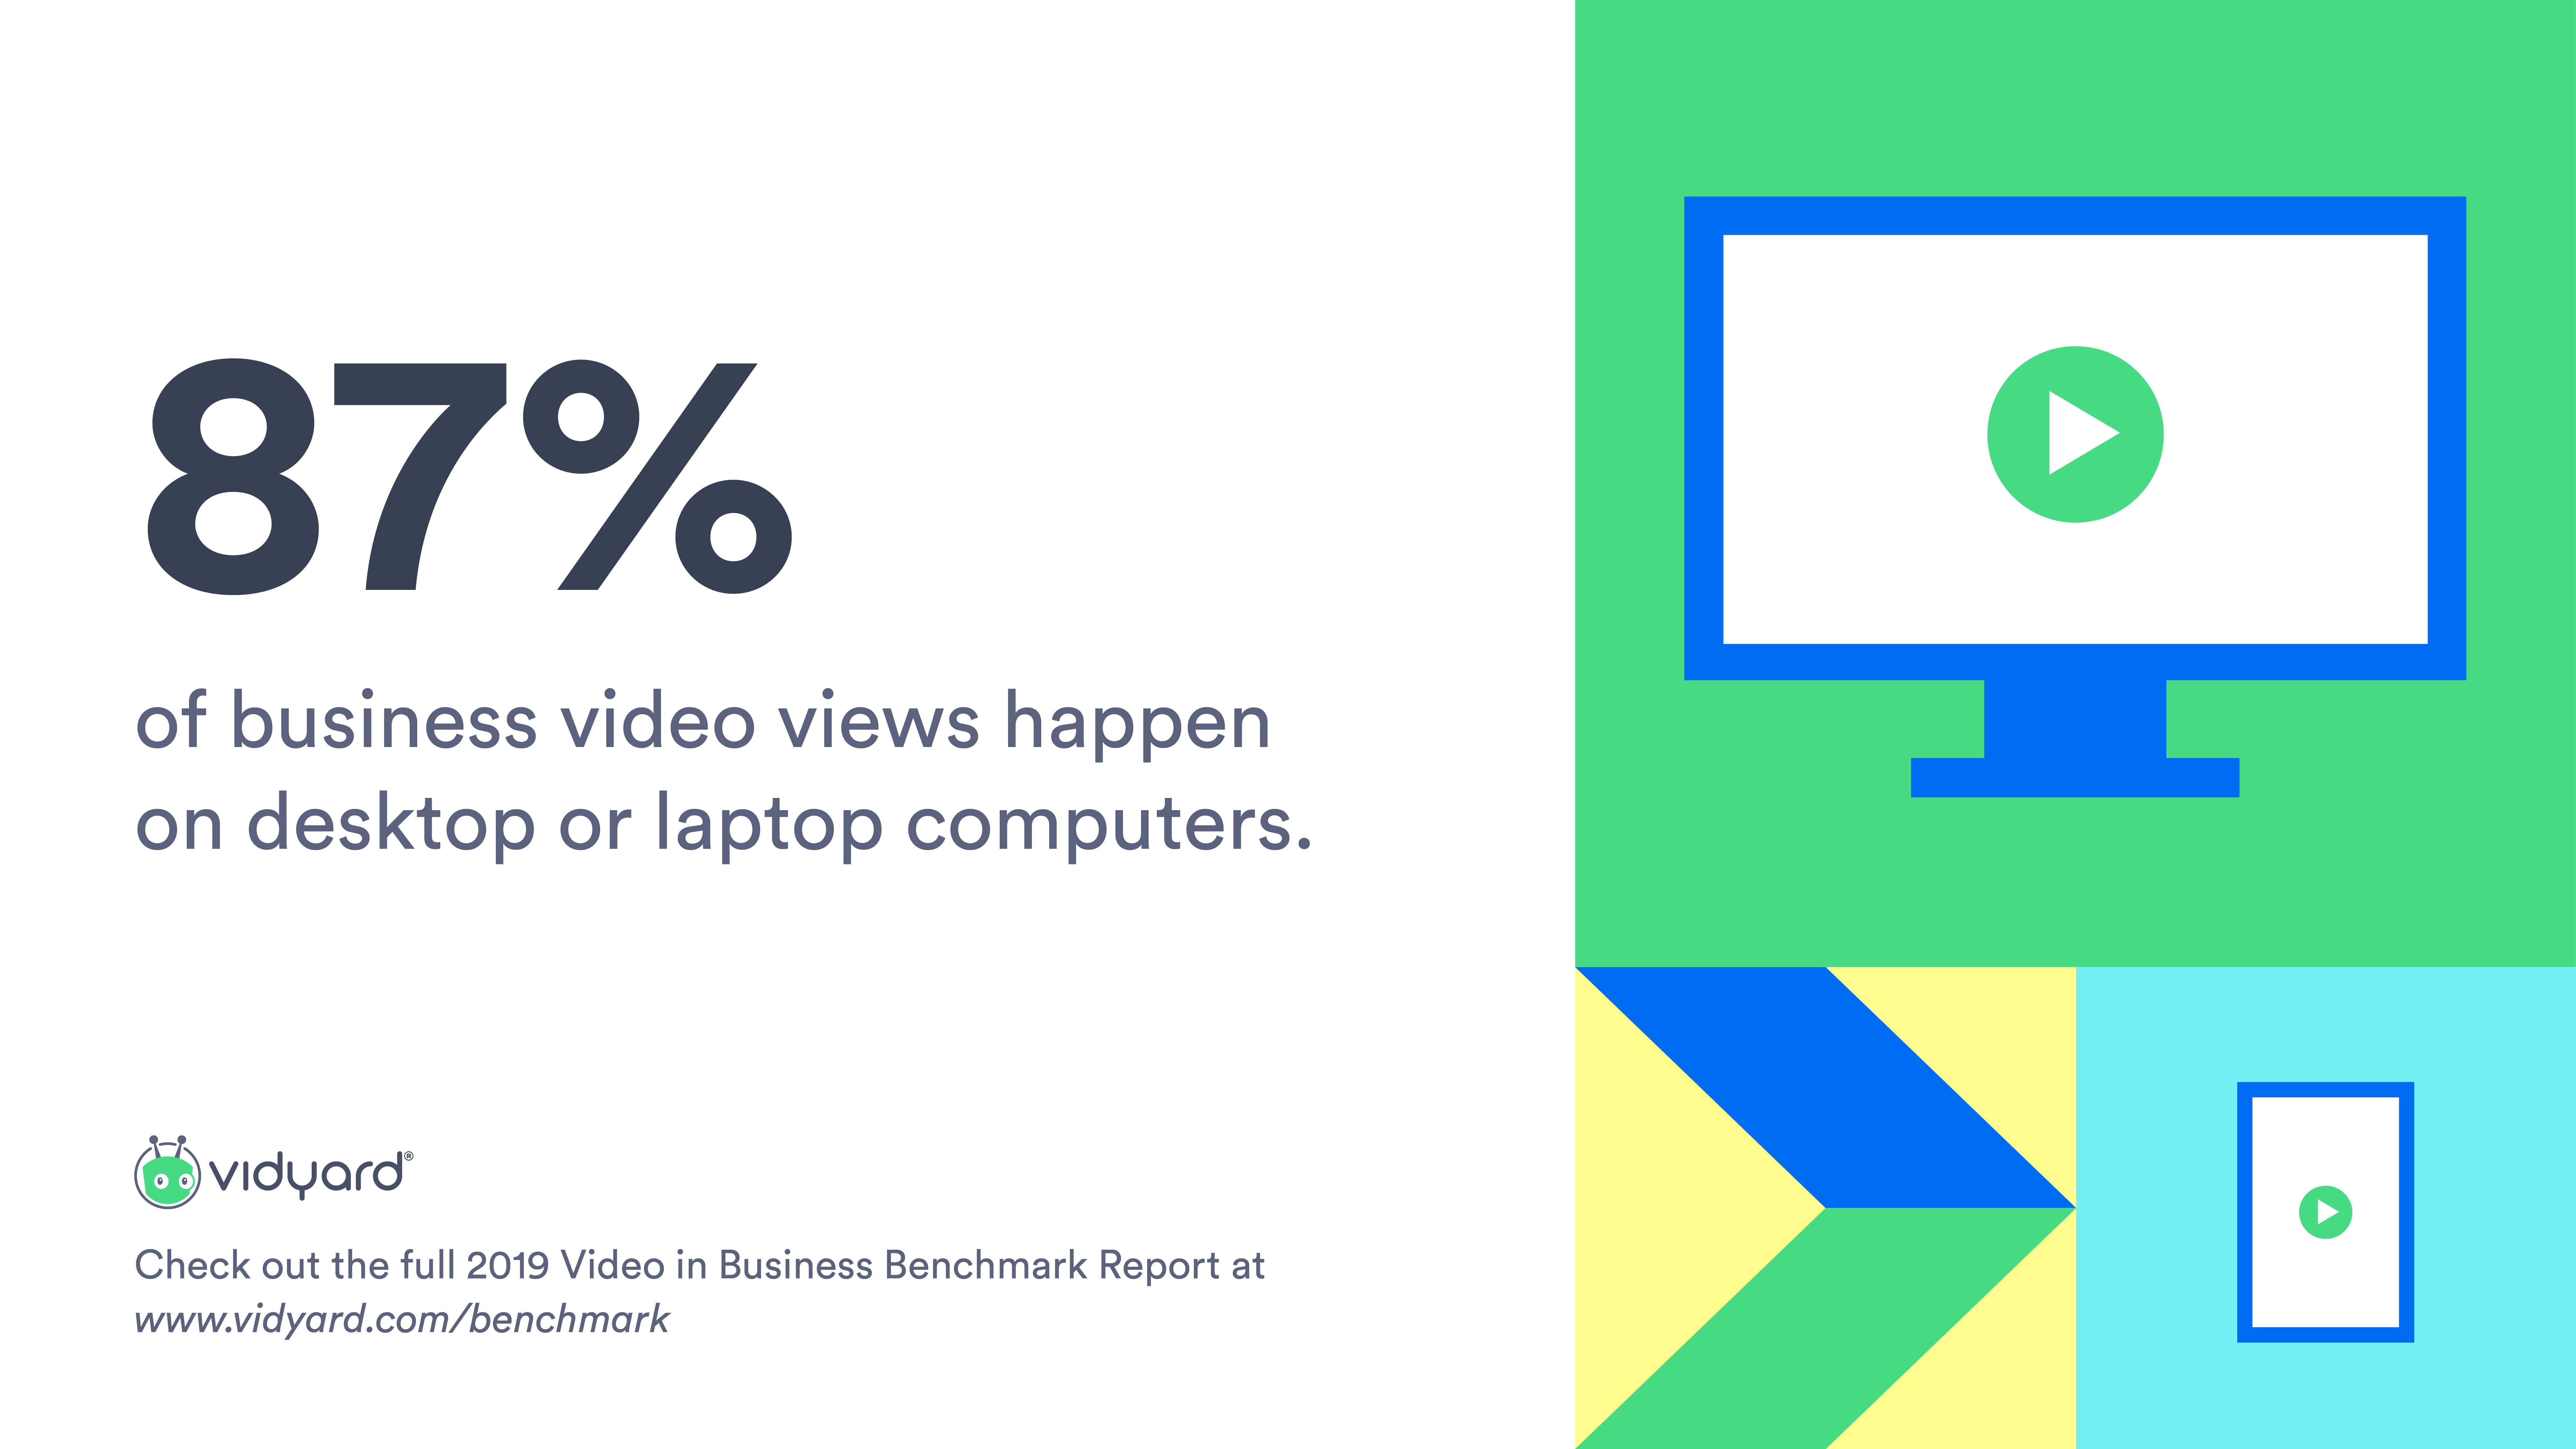 Desktop viewing still dominant for business video engagement: The majority of video views still take place on desktop (87%), but mobile views continue to increase. This year, 13% of business video views happened on mobile, a small increase from the previous year's 11%.